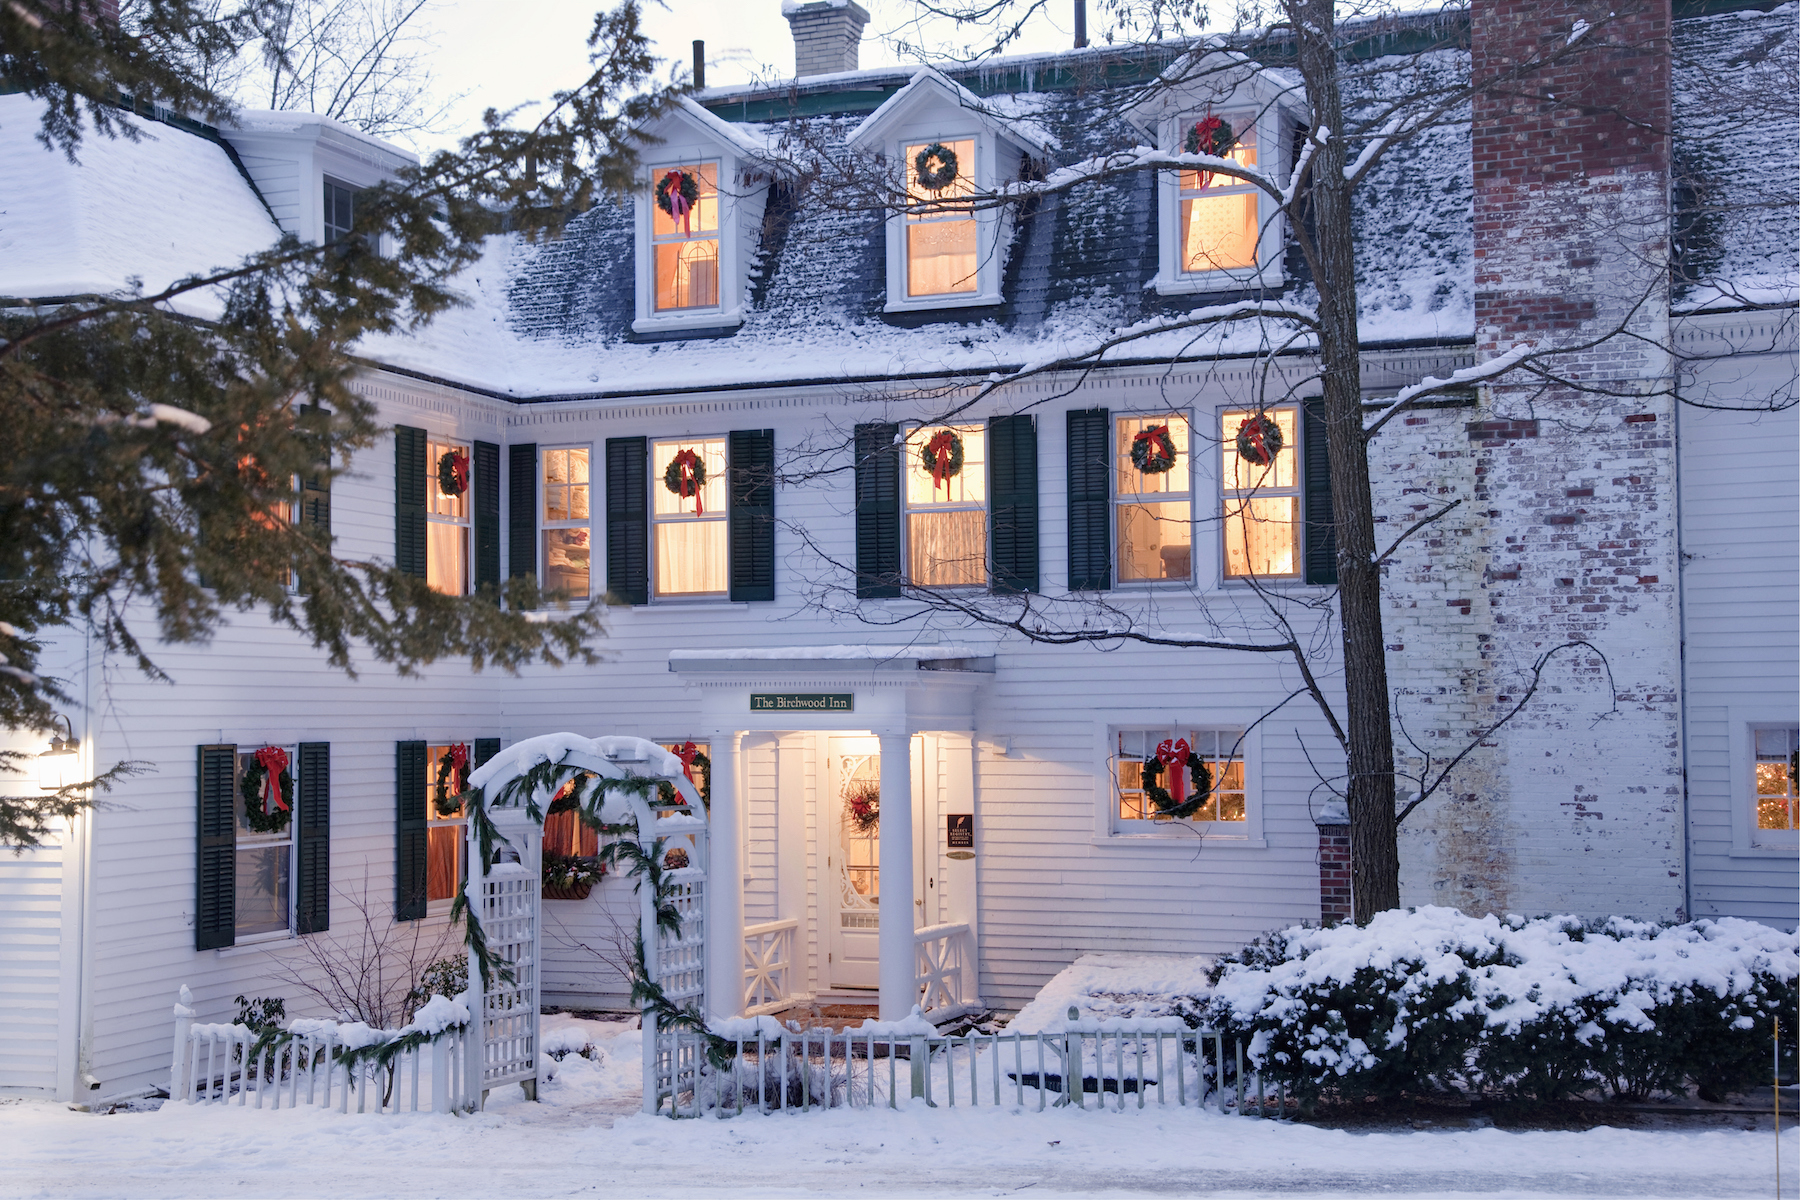 White house with snow, decorated for Christmas